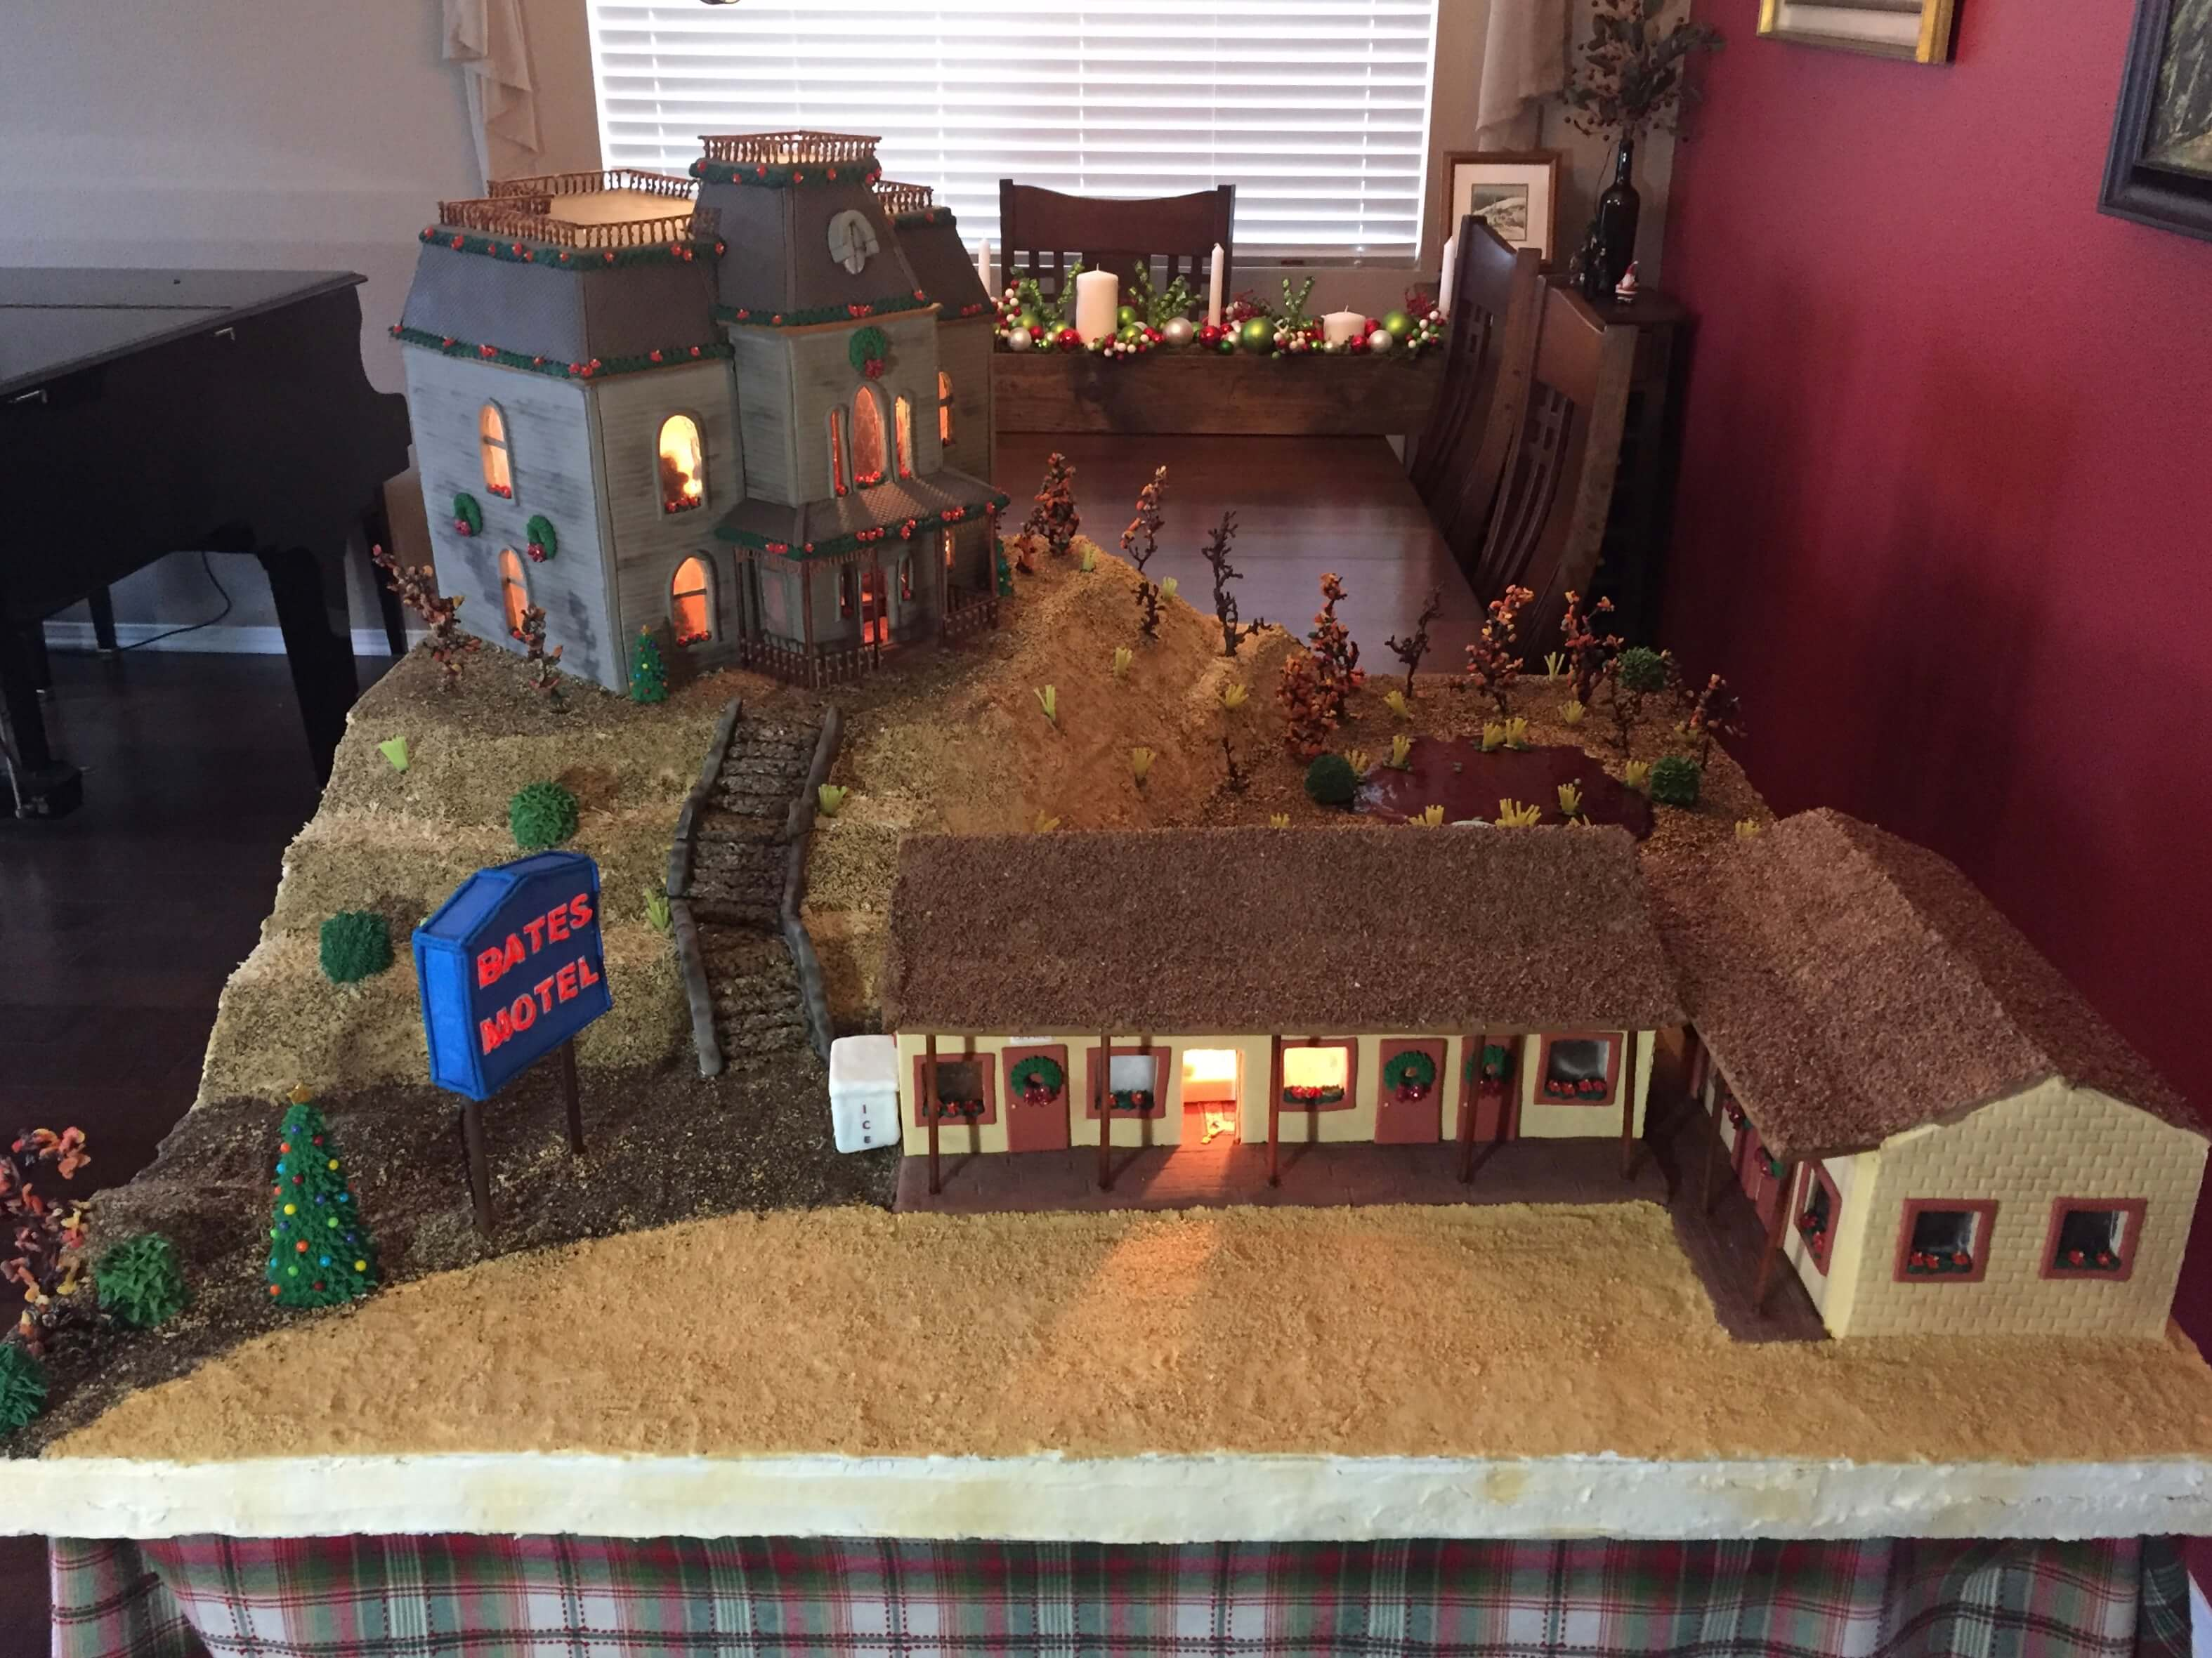 bates motel gingerbread35 1 - The Bates Motel and House Get Immortalized in Gingerbread Form